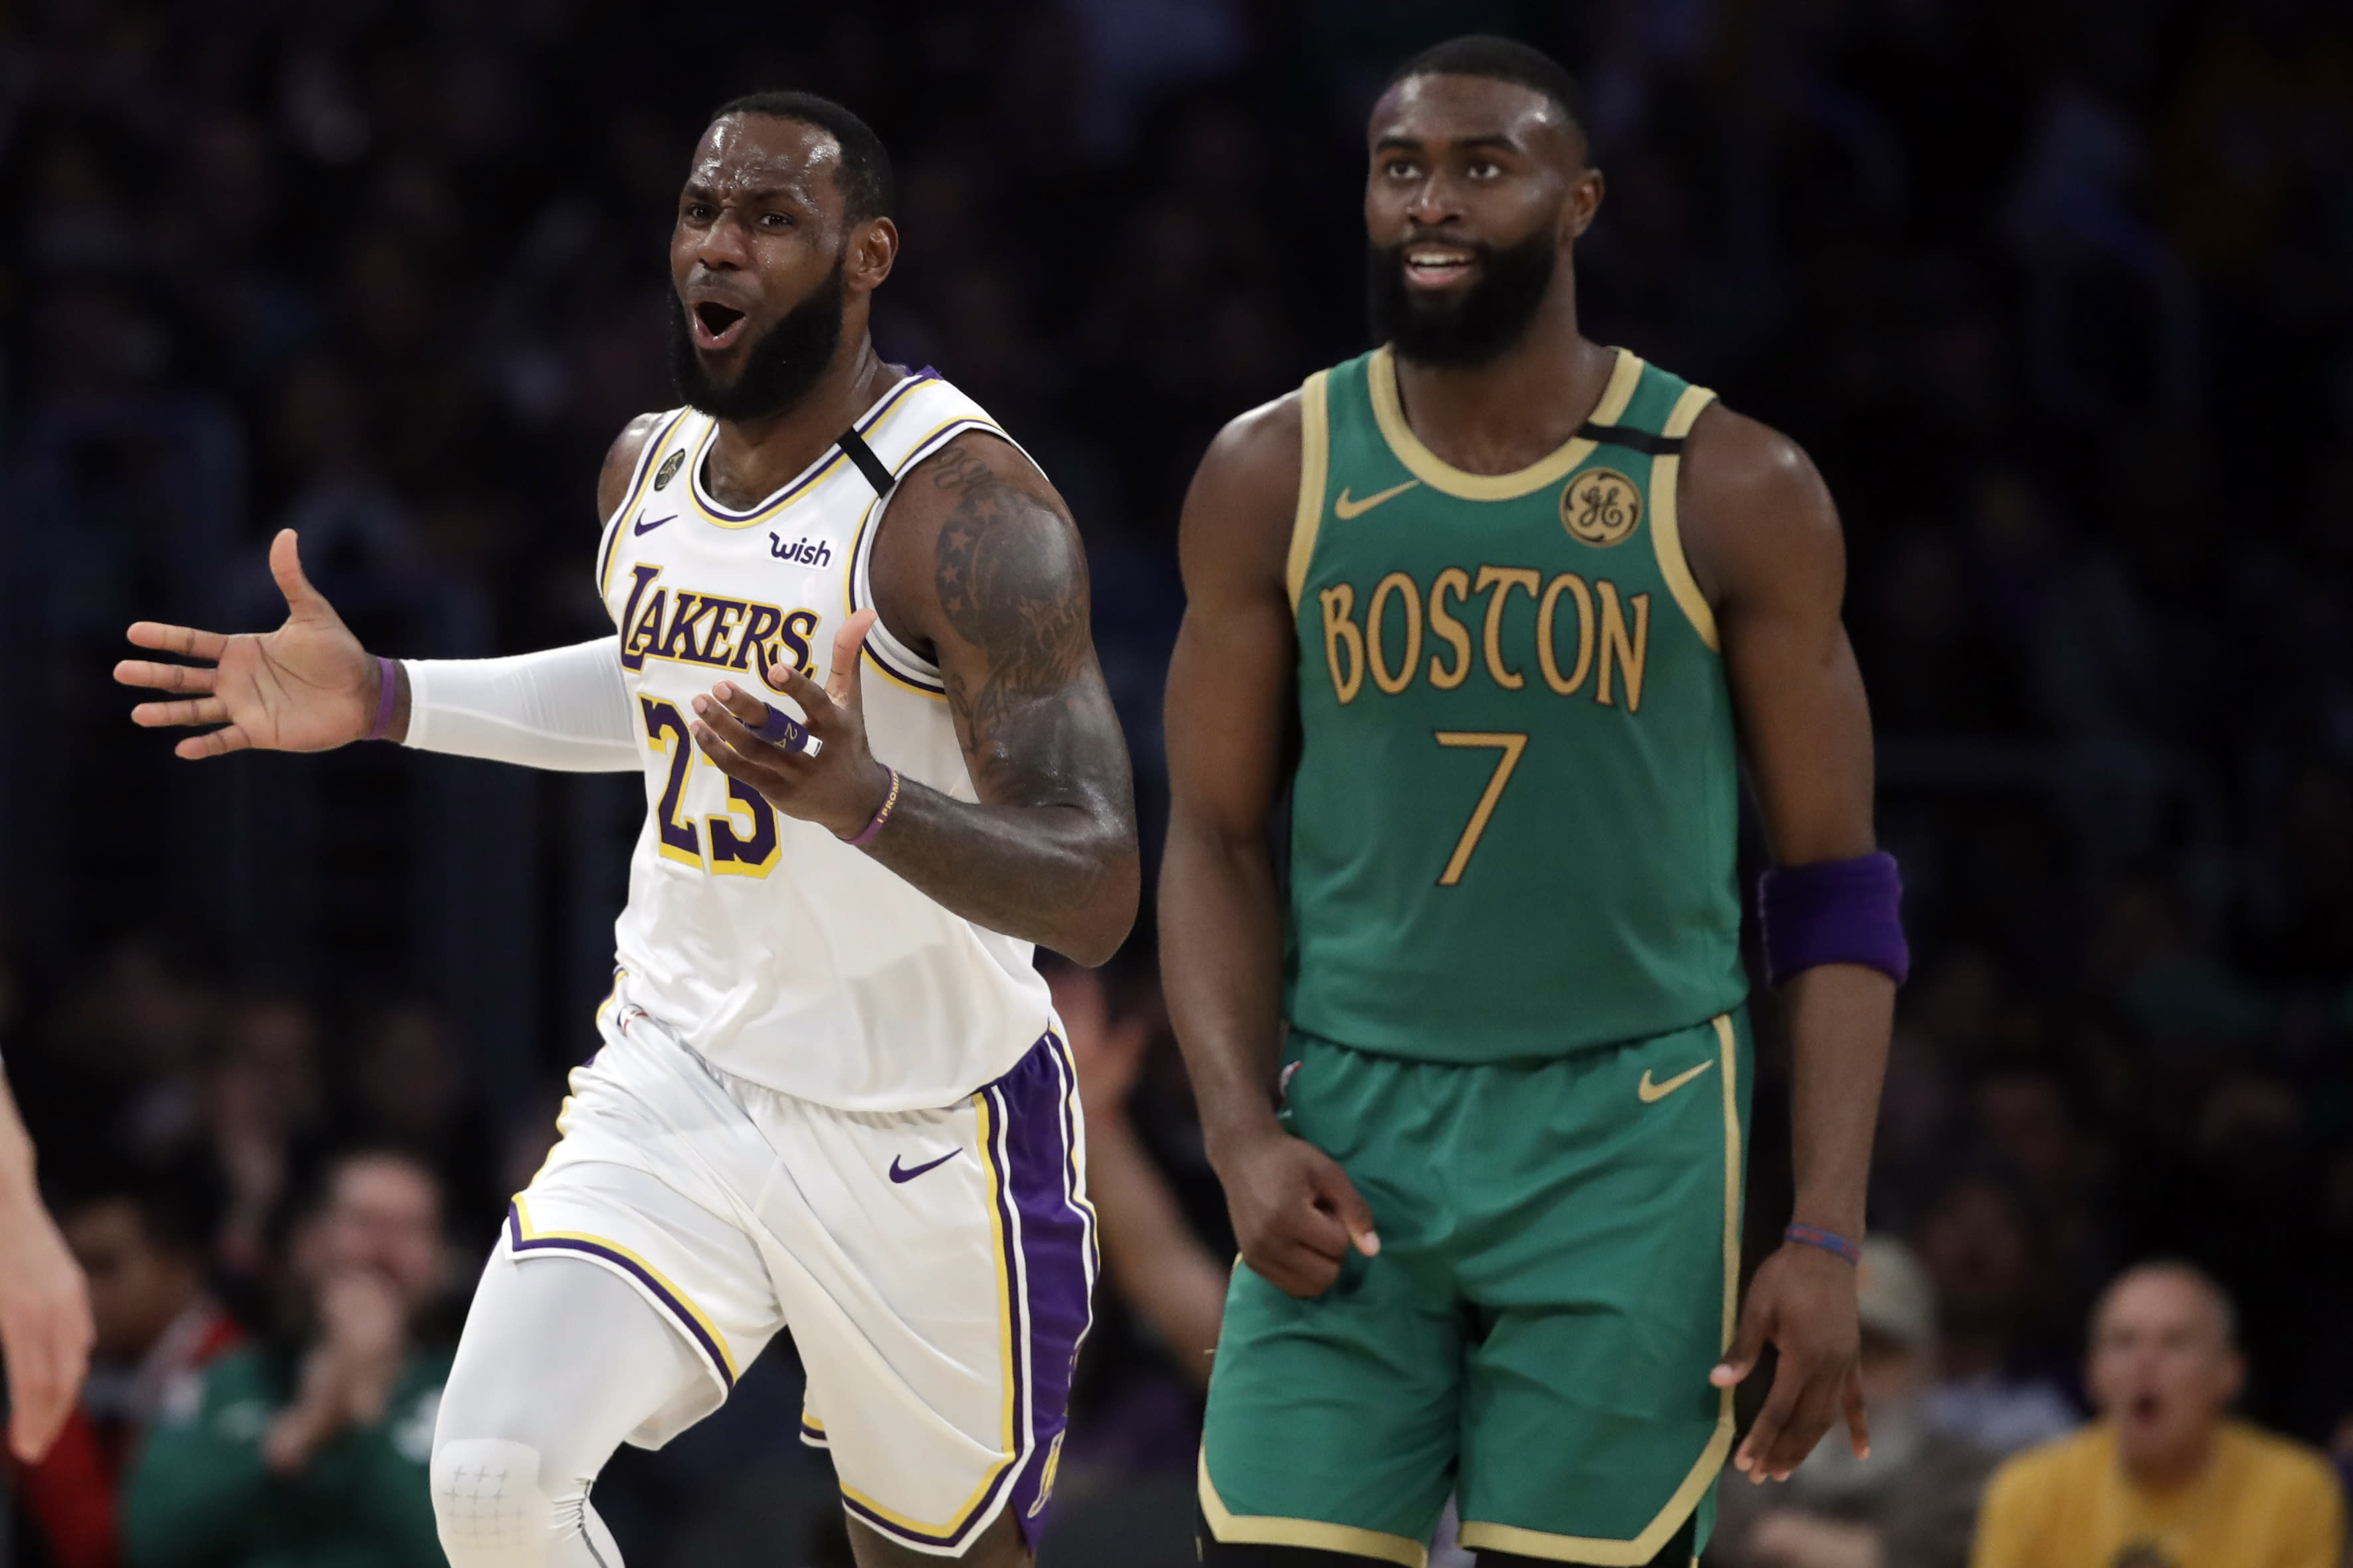 Los Angeles Lakers' LeBron James (23) argues a call next to Boston Celtics' Jaylen Brown (7) during the first half of an NBA basketball game Sunday, Feb. 23, 2020, in Los Angeles. (AP Photo/Marcio Jose Sanchez)